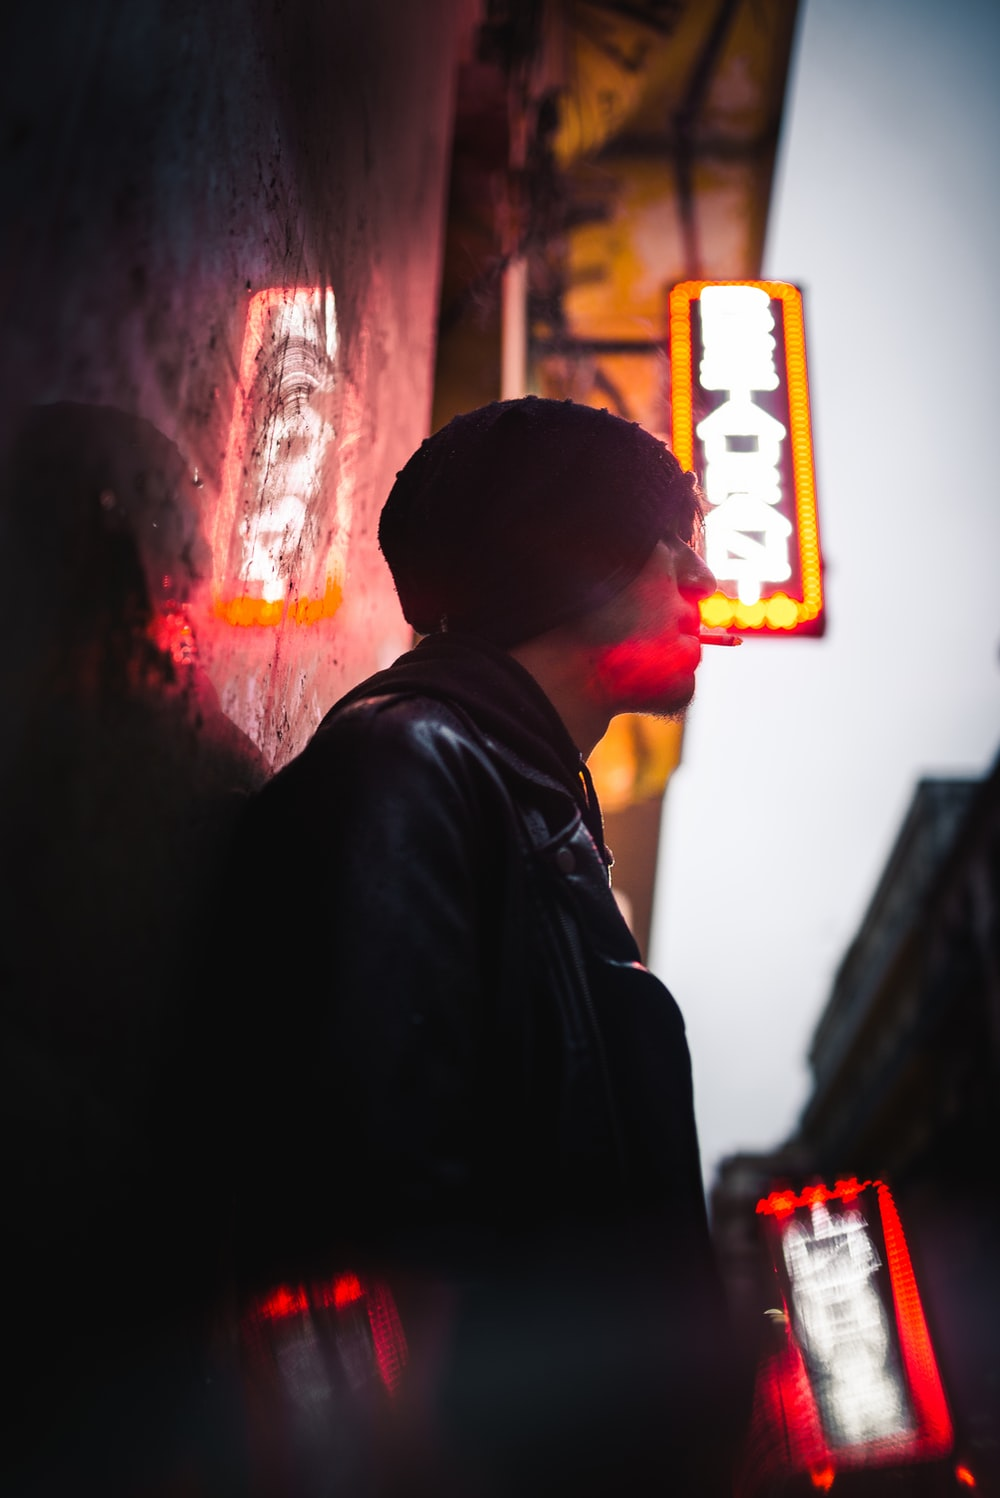 man leaning on wall under neon sign